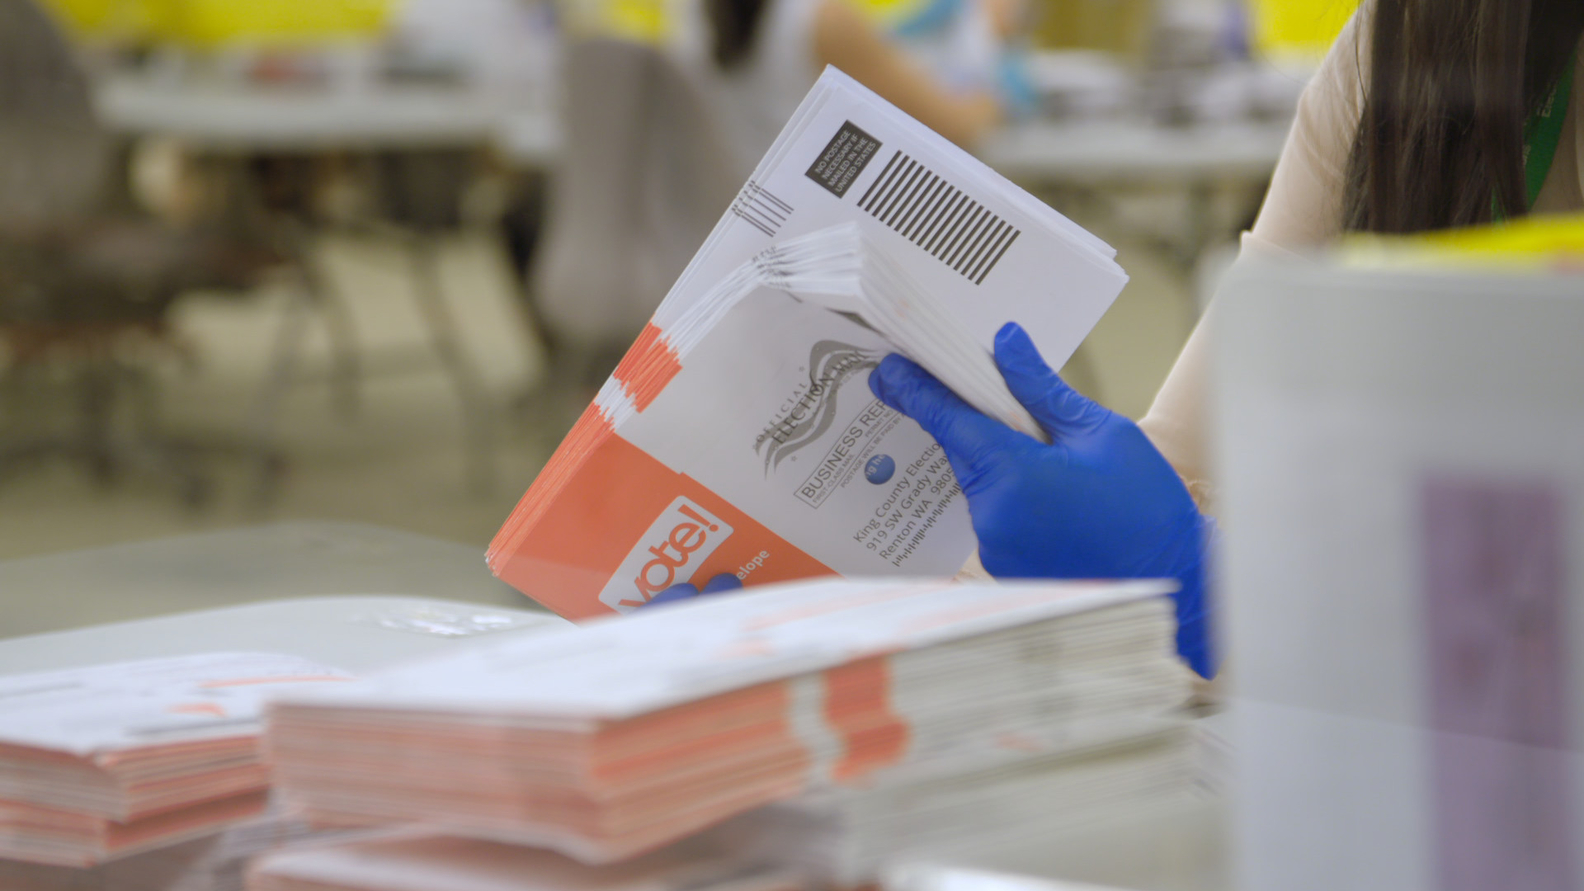 Mail-in ballots being processed during Washington state's primary election